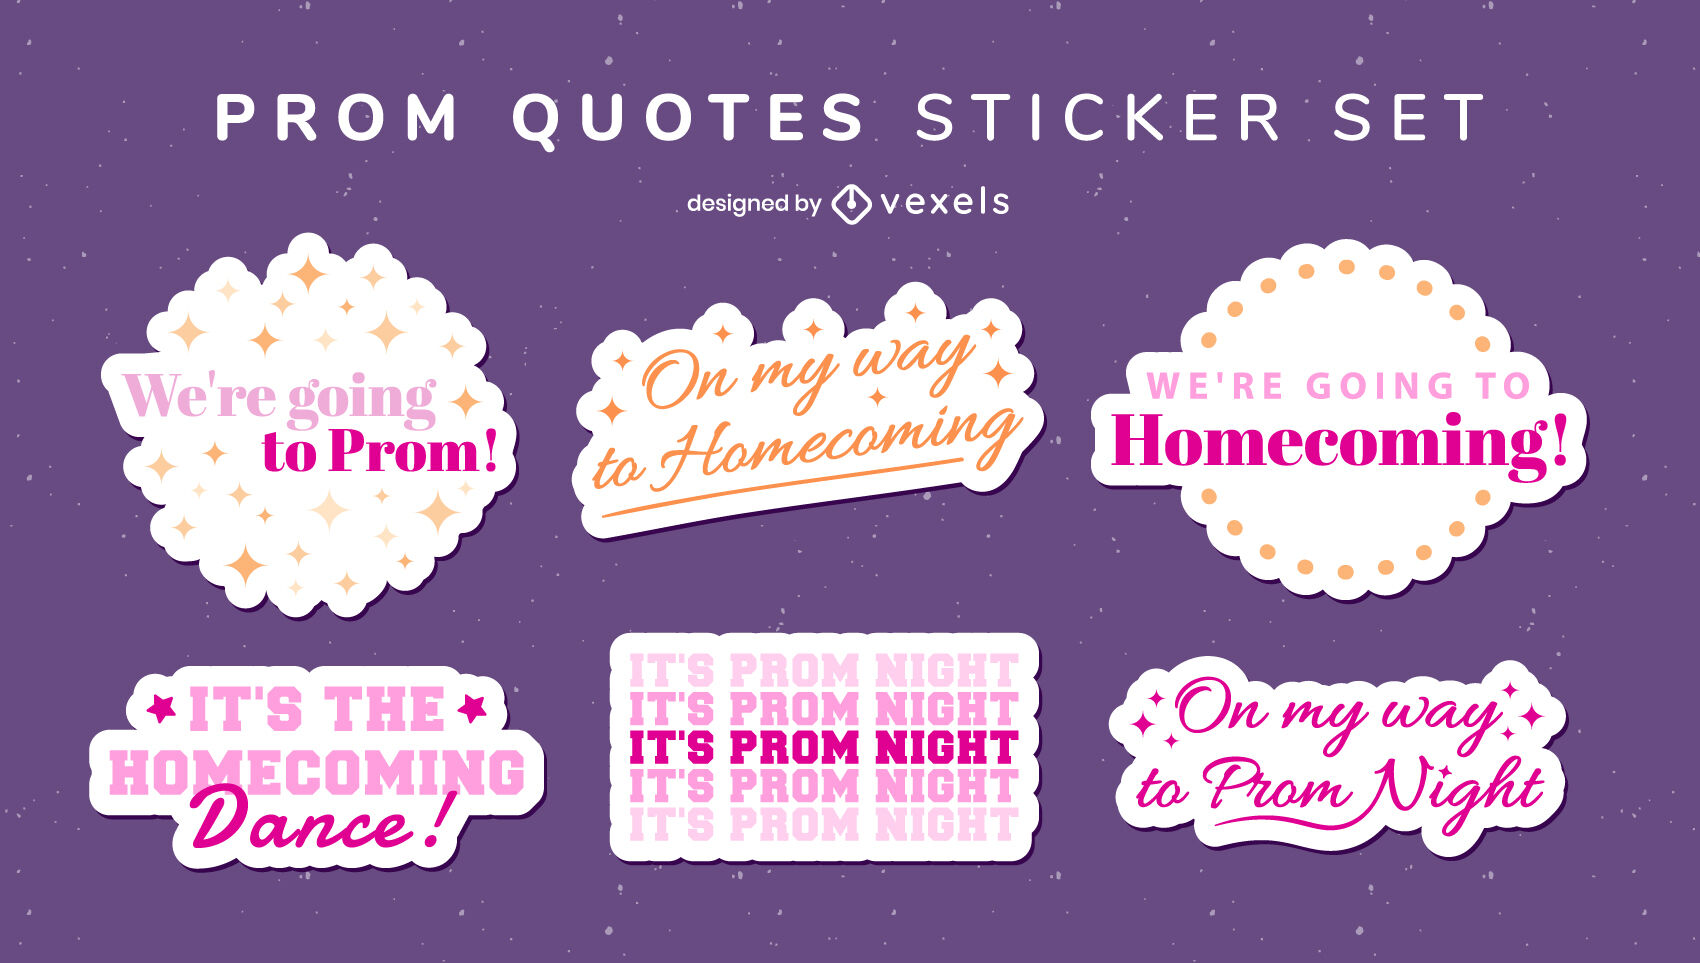 Prom quotes stickers set